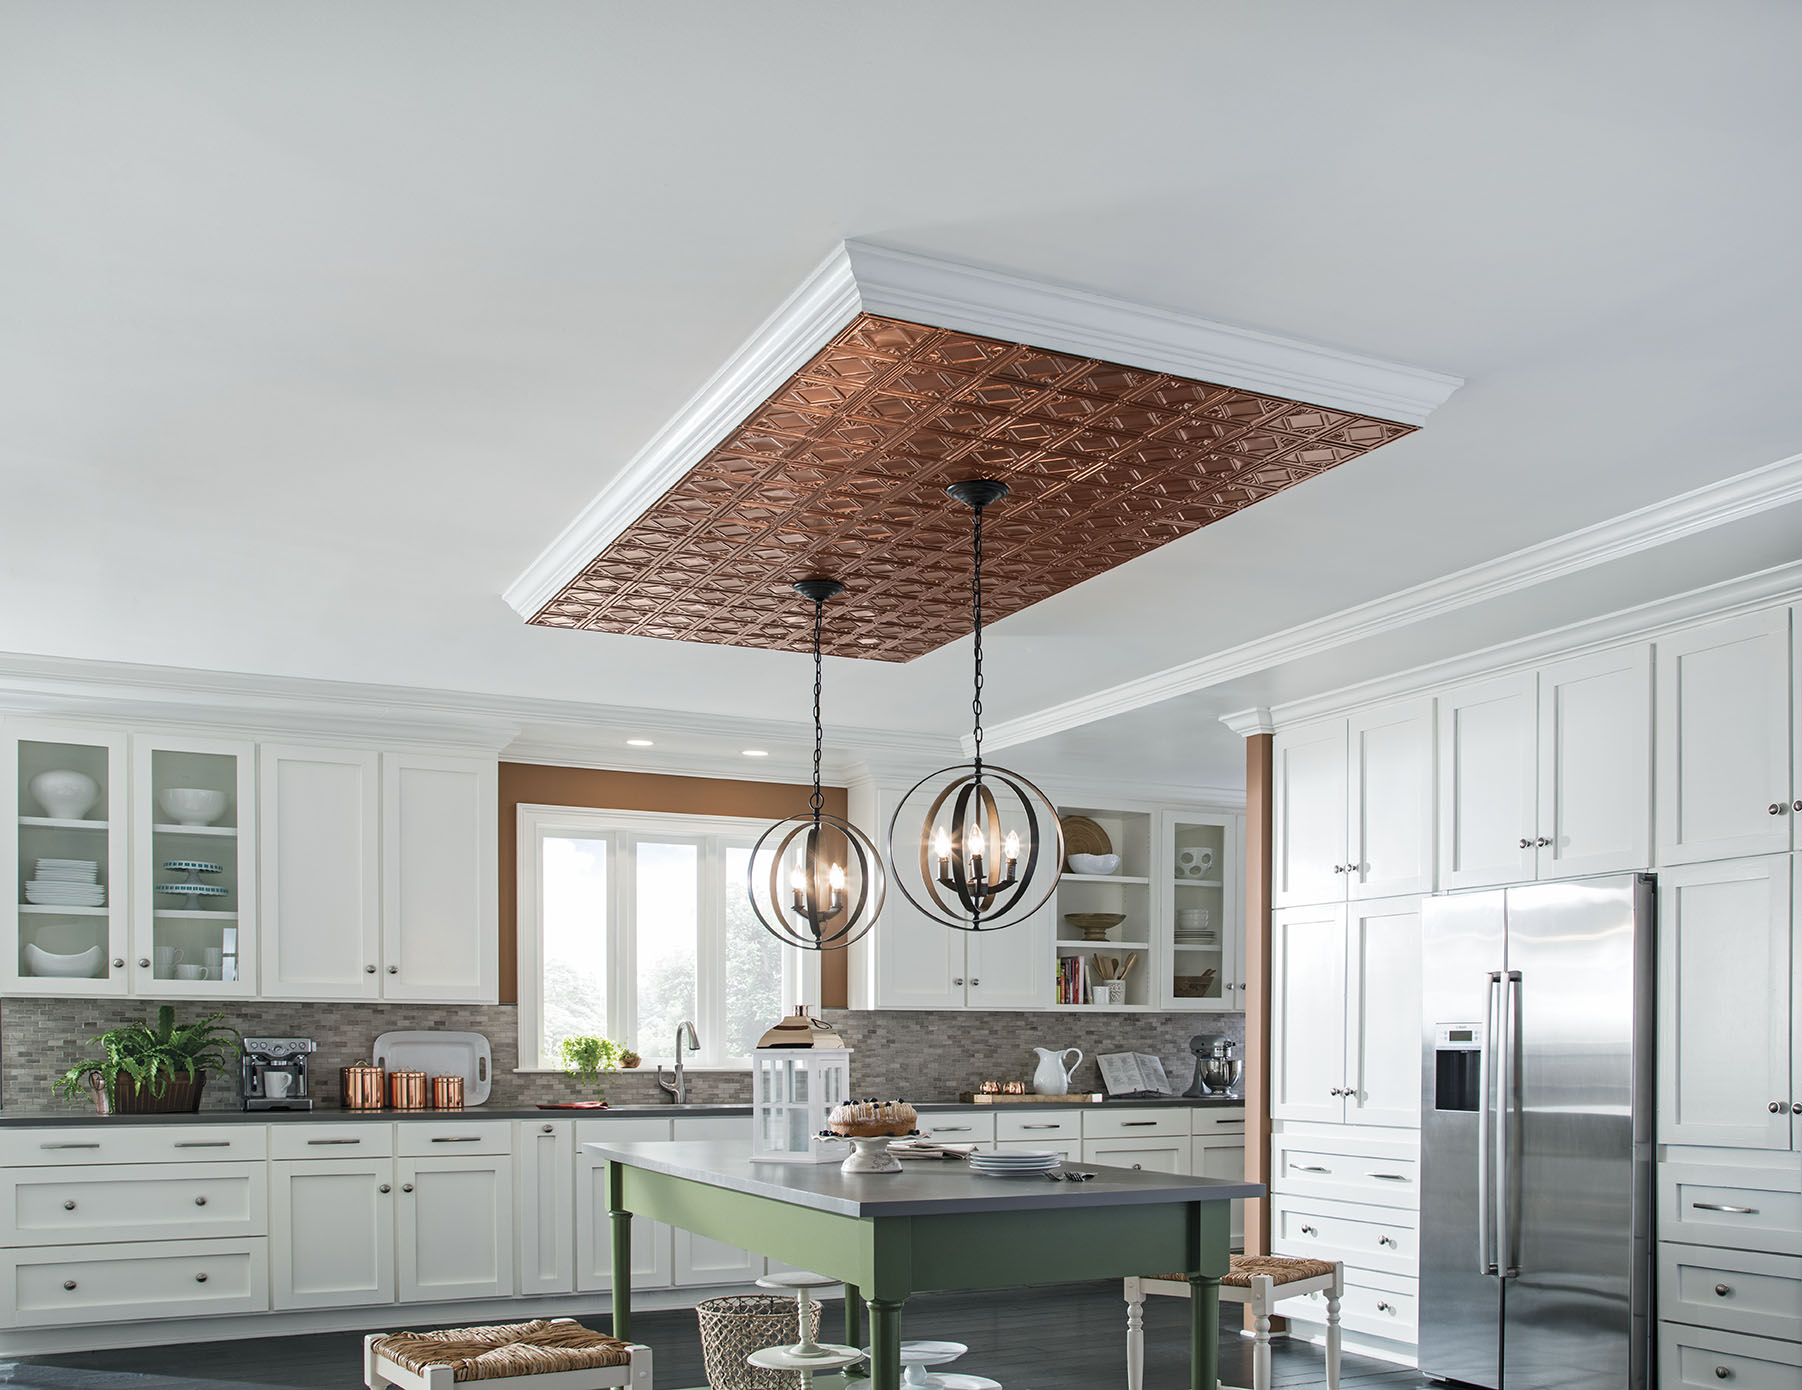 Pretty 12 X 24 Floor Tile Small 2 X 6 Subway Tile Solid 2X2 Ceramic Floor Tile 4X4 Tile Backsplash Old 4X4 White Ceramic Tile Black6 X 12 Ceramic Tile Copper Ceiling Look | Armstrong Ceilings Residential